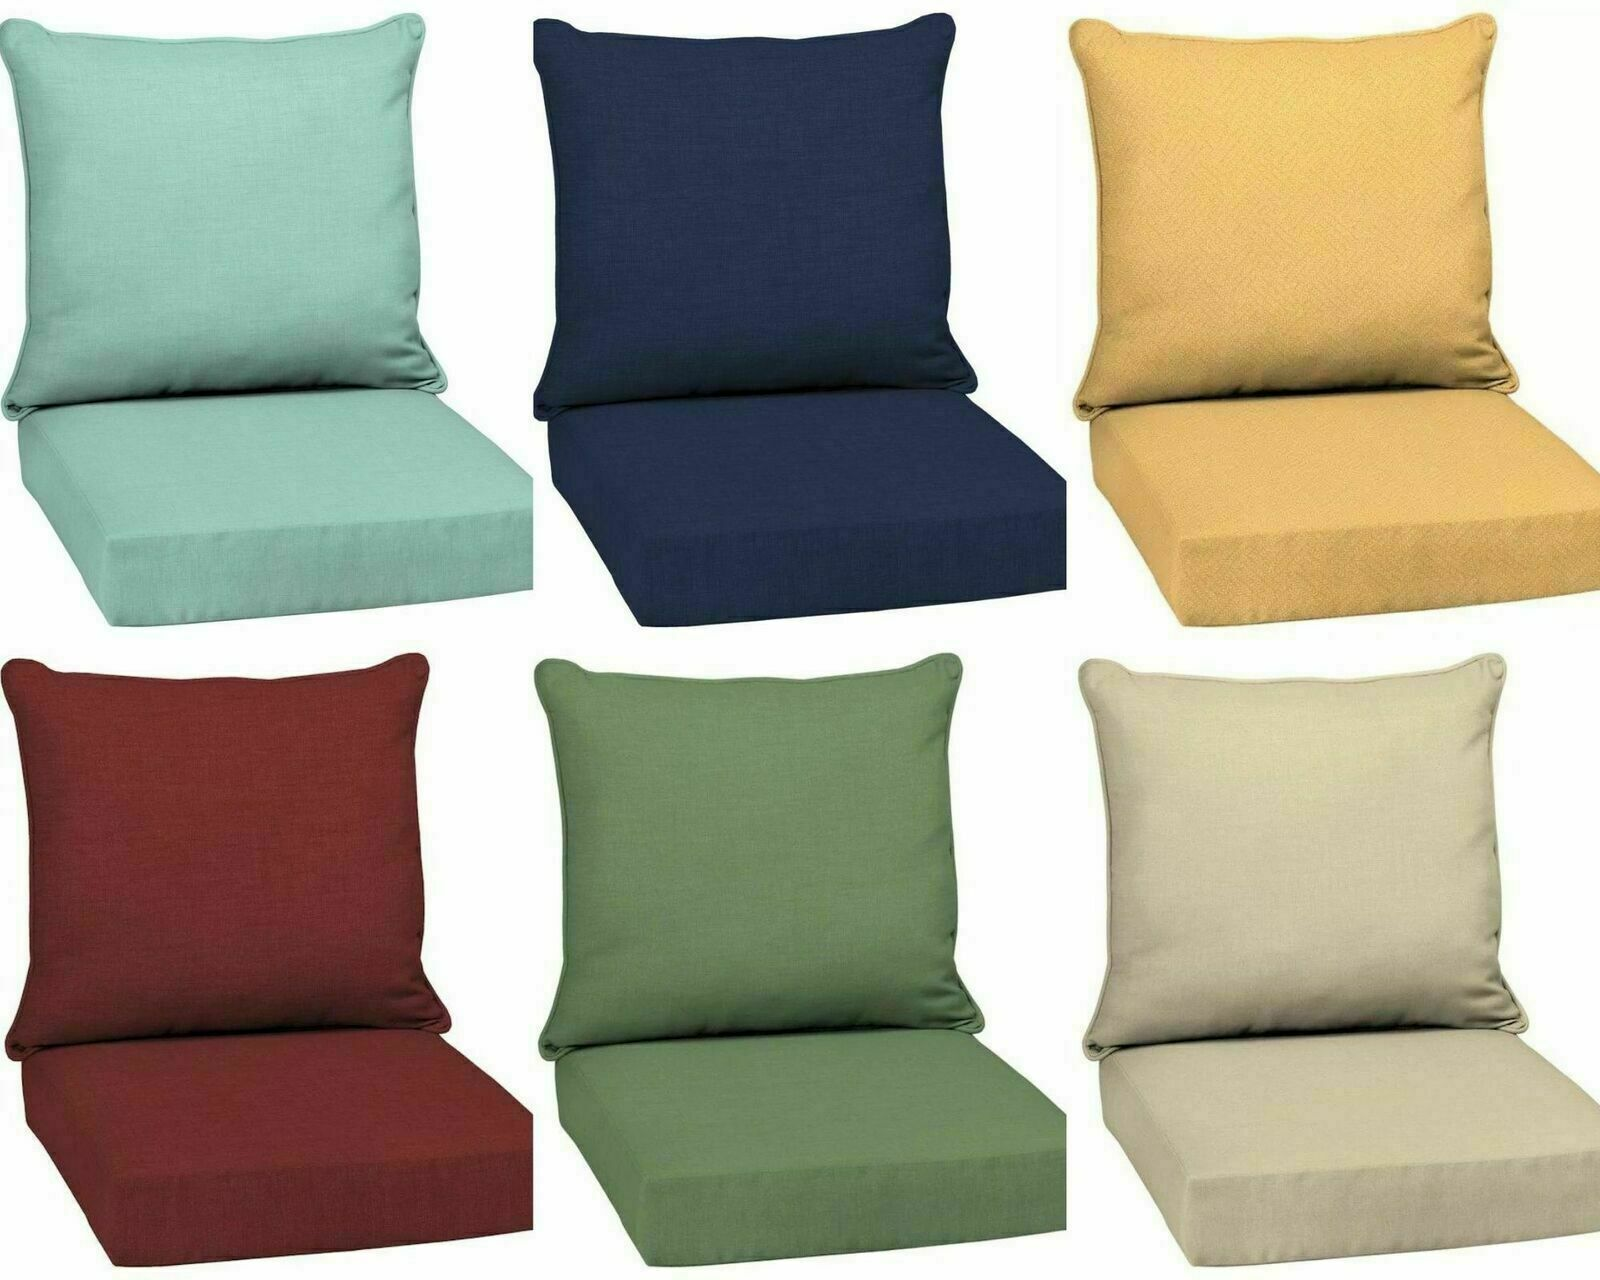 Patio Furniture Seat Cushions Lawn Chair Outdoor Set 2 Tufted Weather Resistant For Sale Ebay